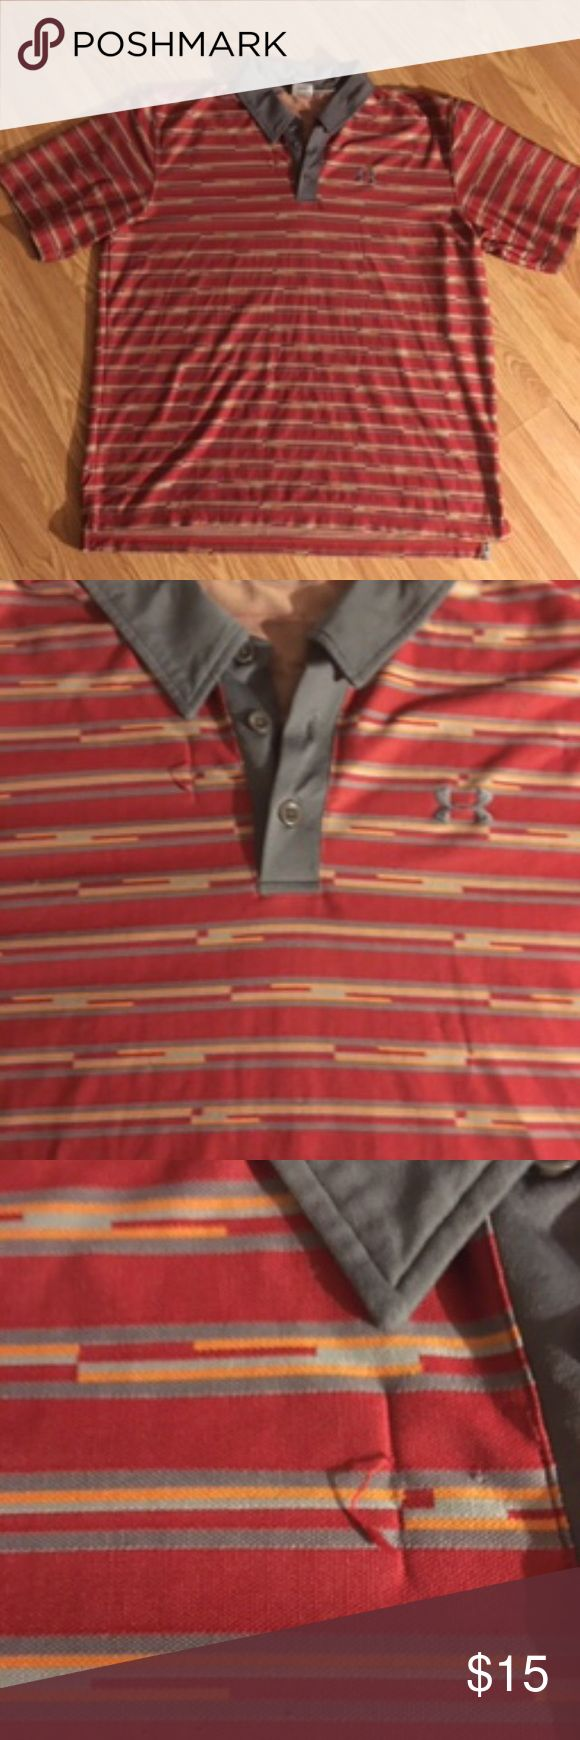 Under Armour Red striped shirt XL Under Armour stripped shirt XL. This is a polo style shirt and it's very nice. This shirt however does have a couple snags (see photos) but it by no means takes away the look of the shirt. Under Armour Shirts Polos